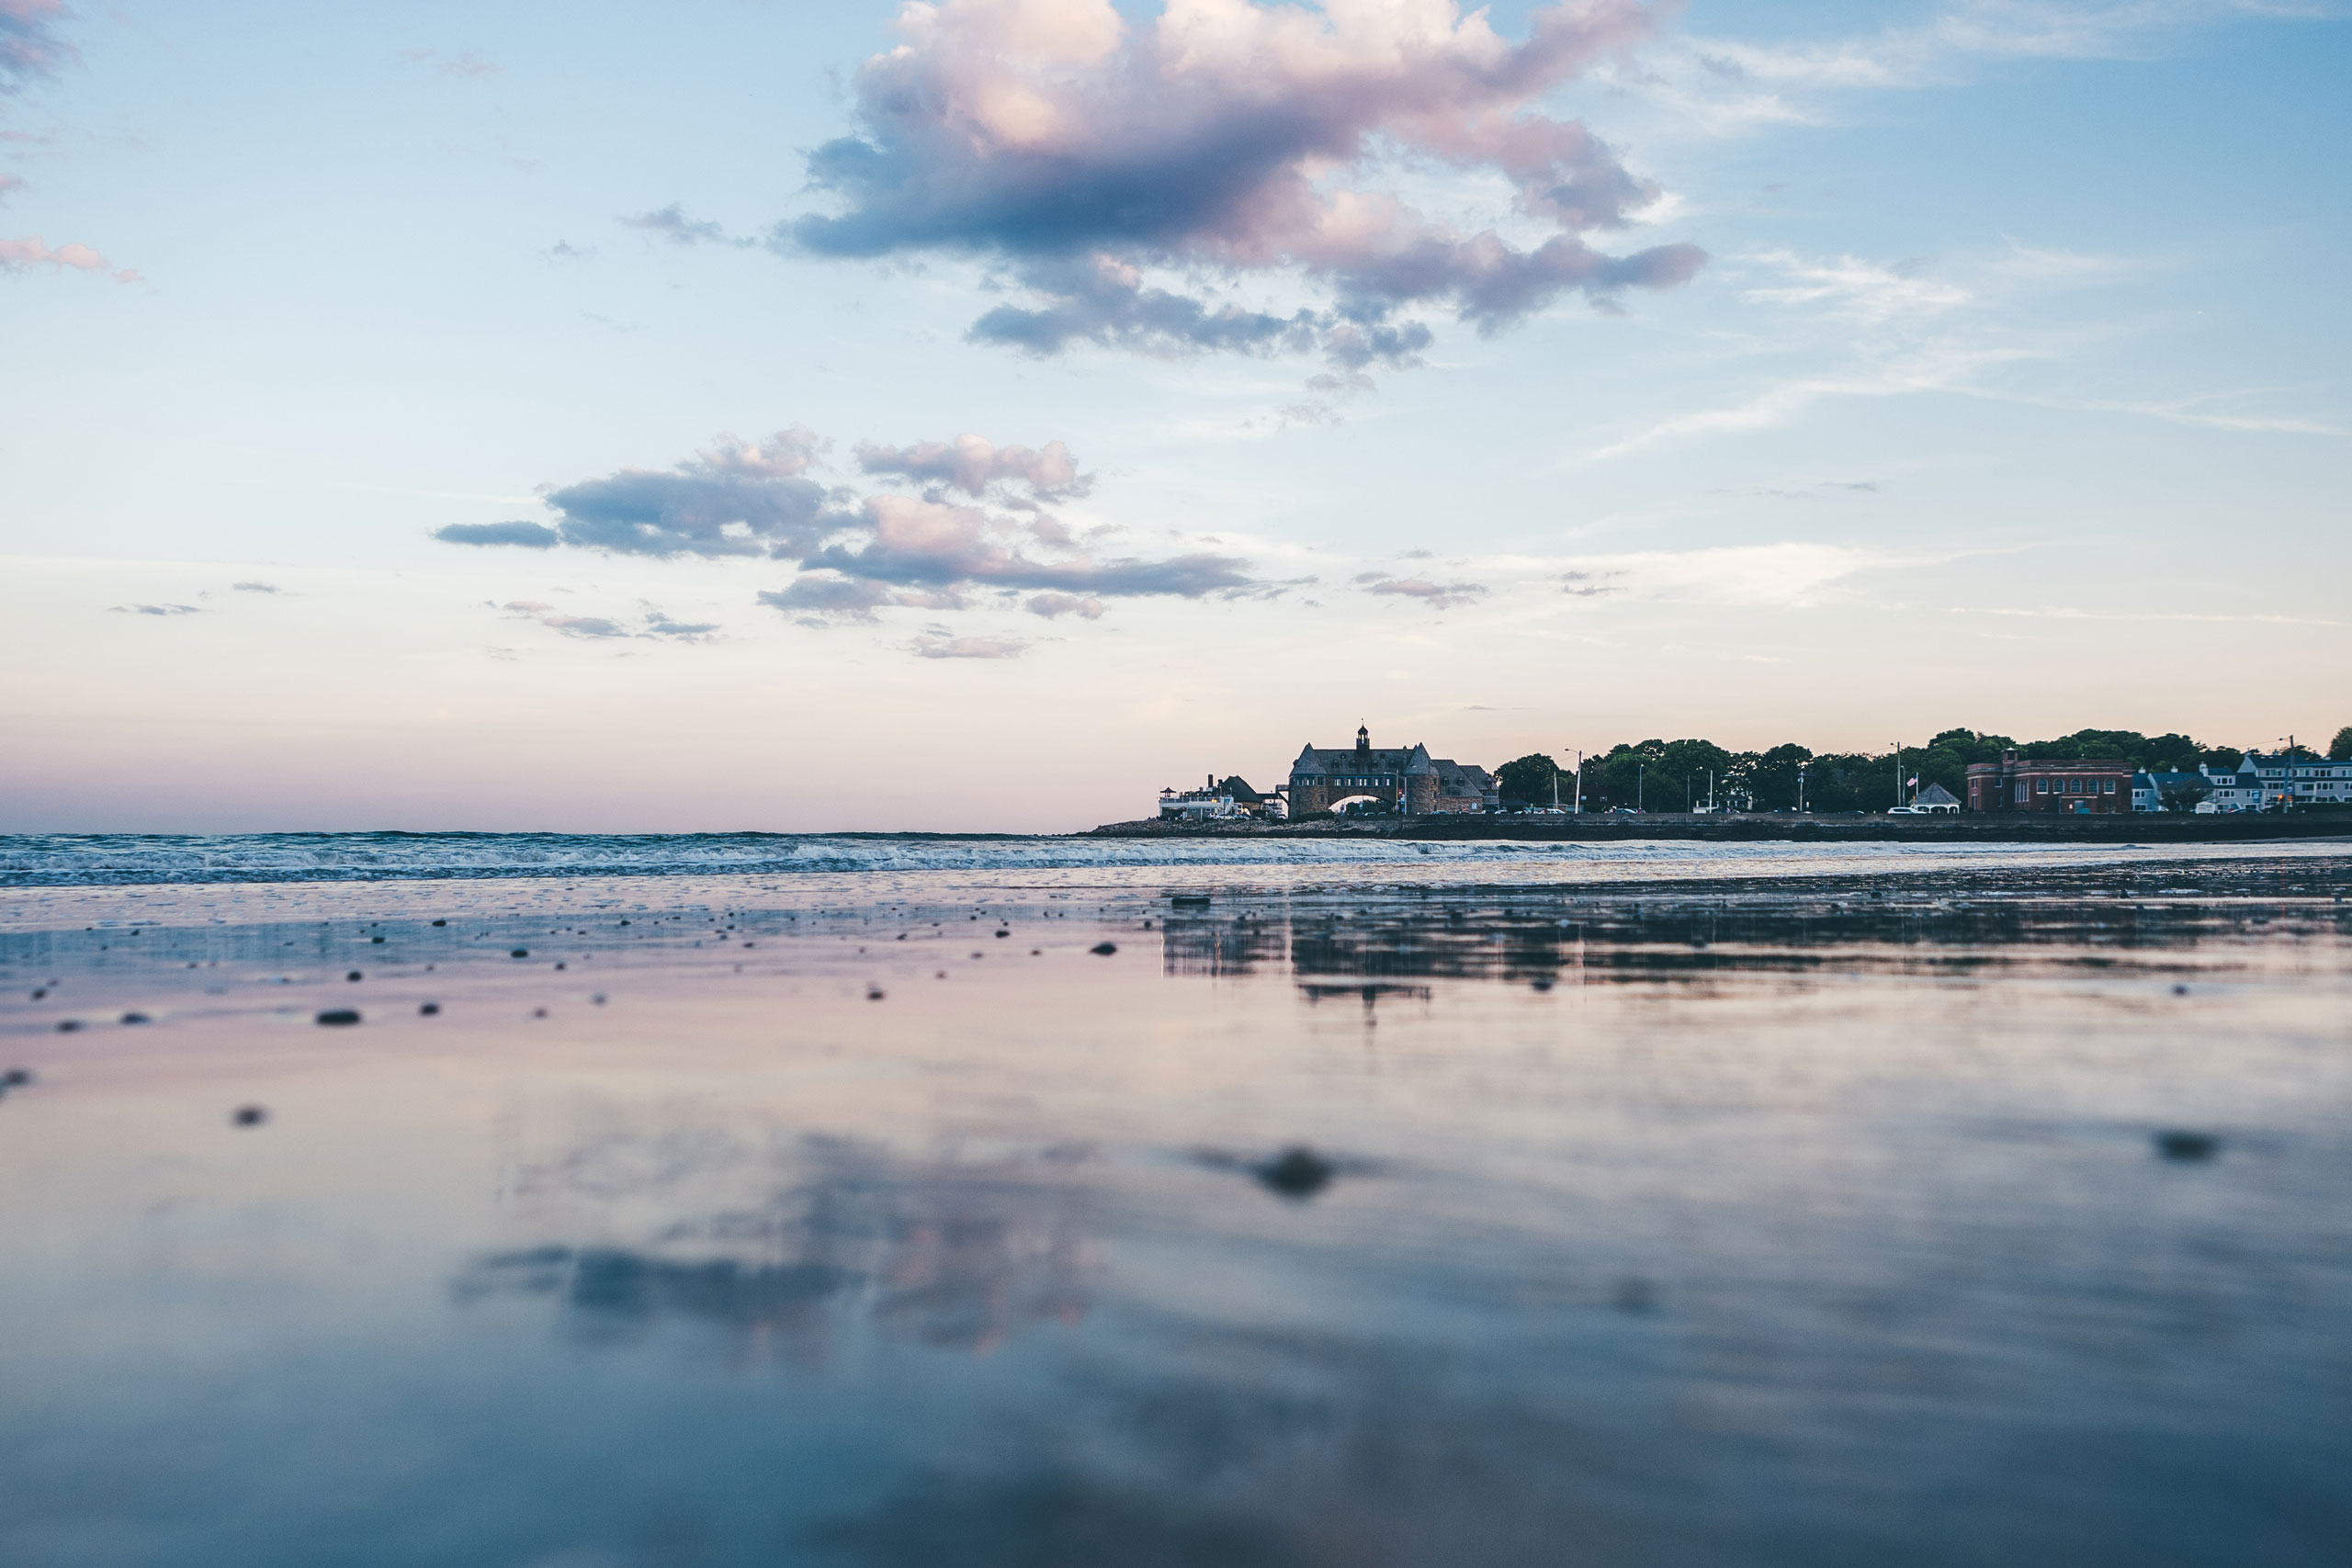 Low tide at Narragansett Beach with a view of the Towers